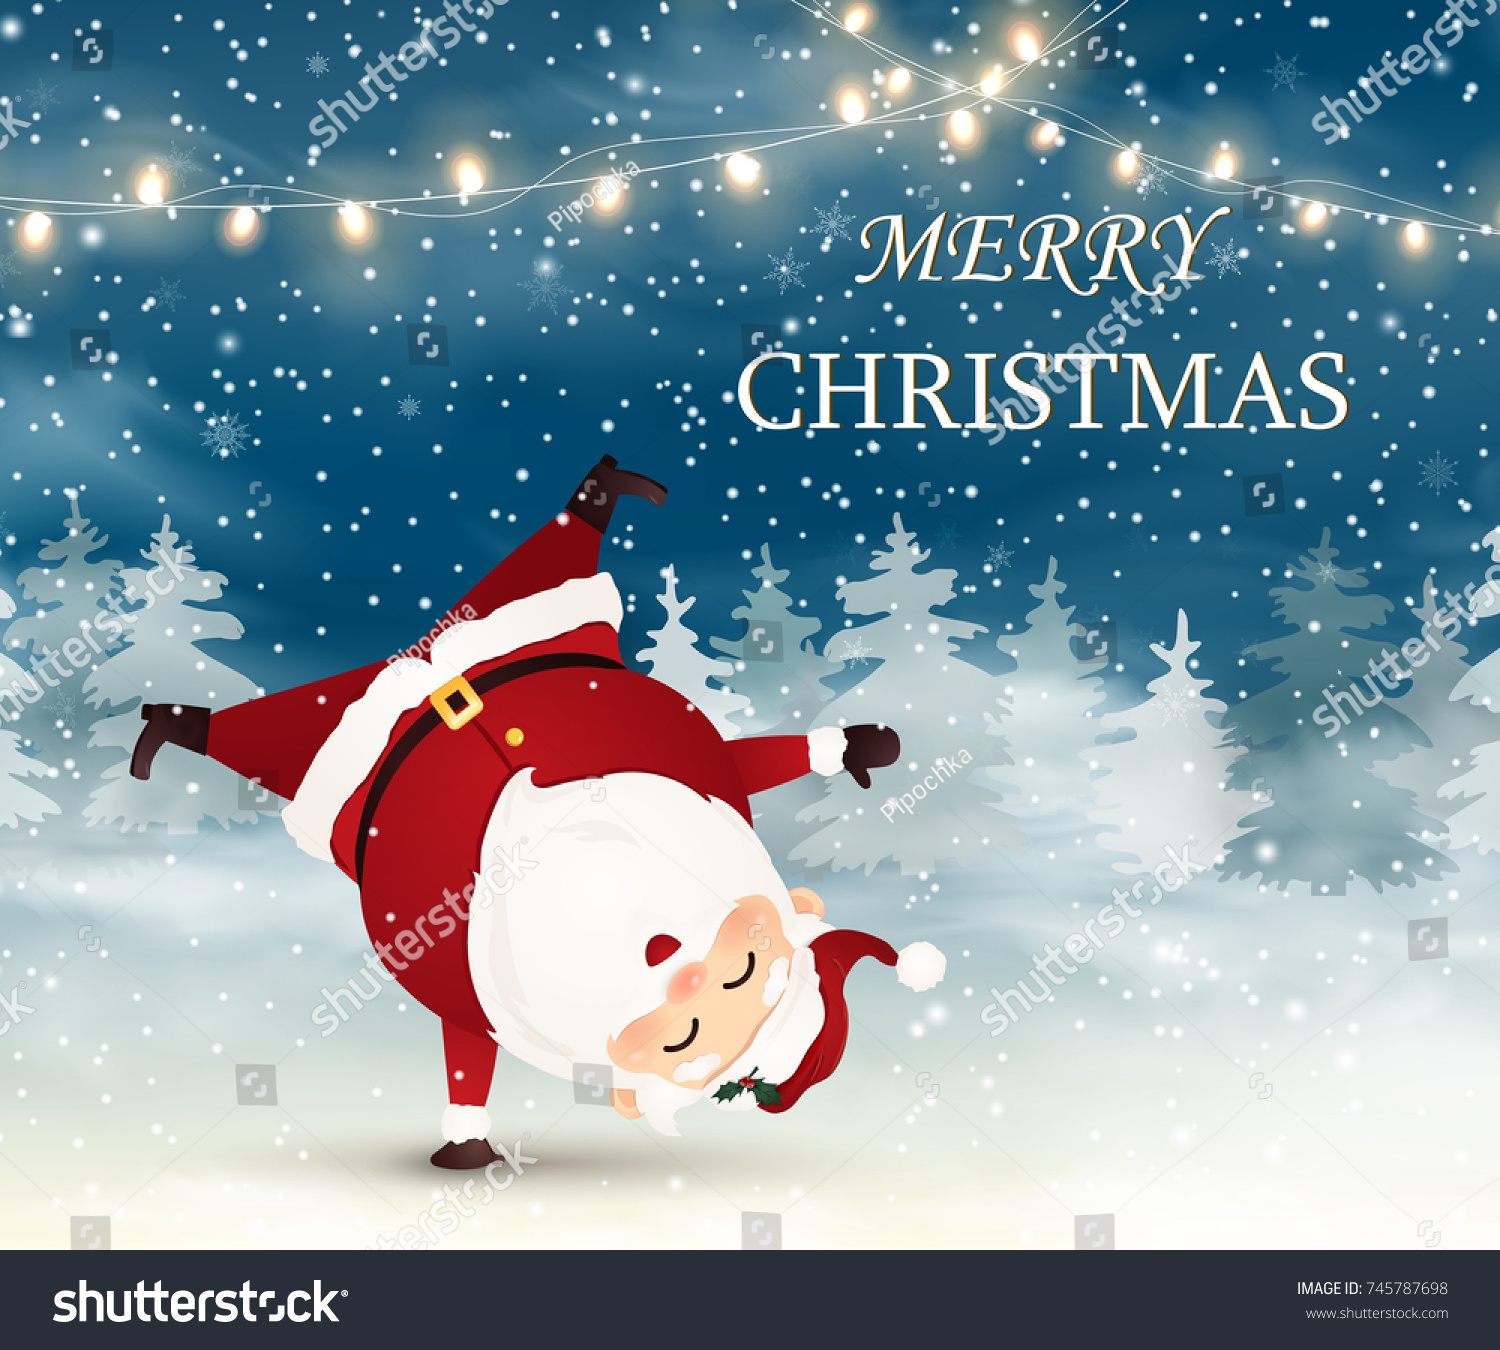 merry christmas cute cheerful santa claus standing on his arm in christmas snow scene